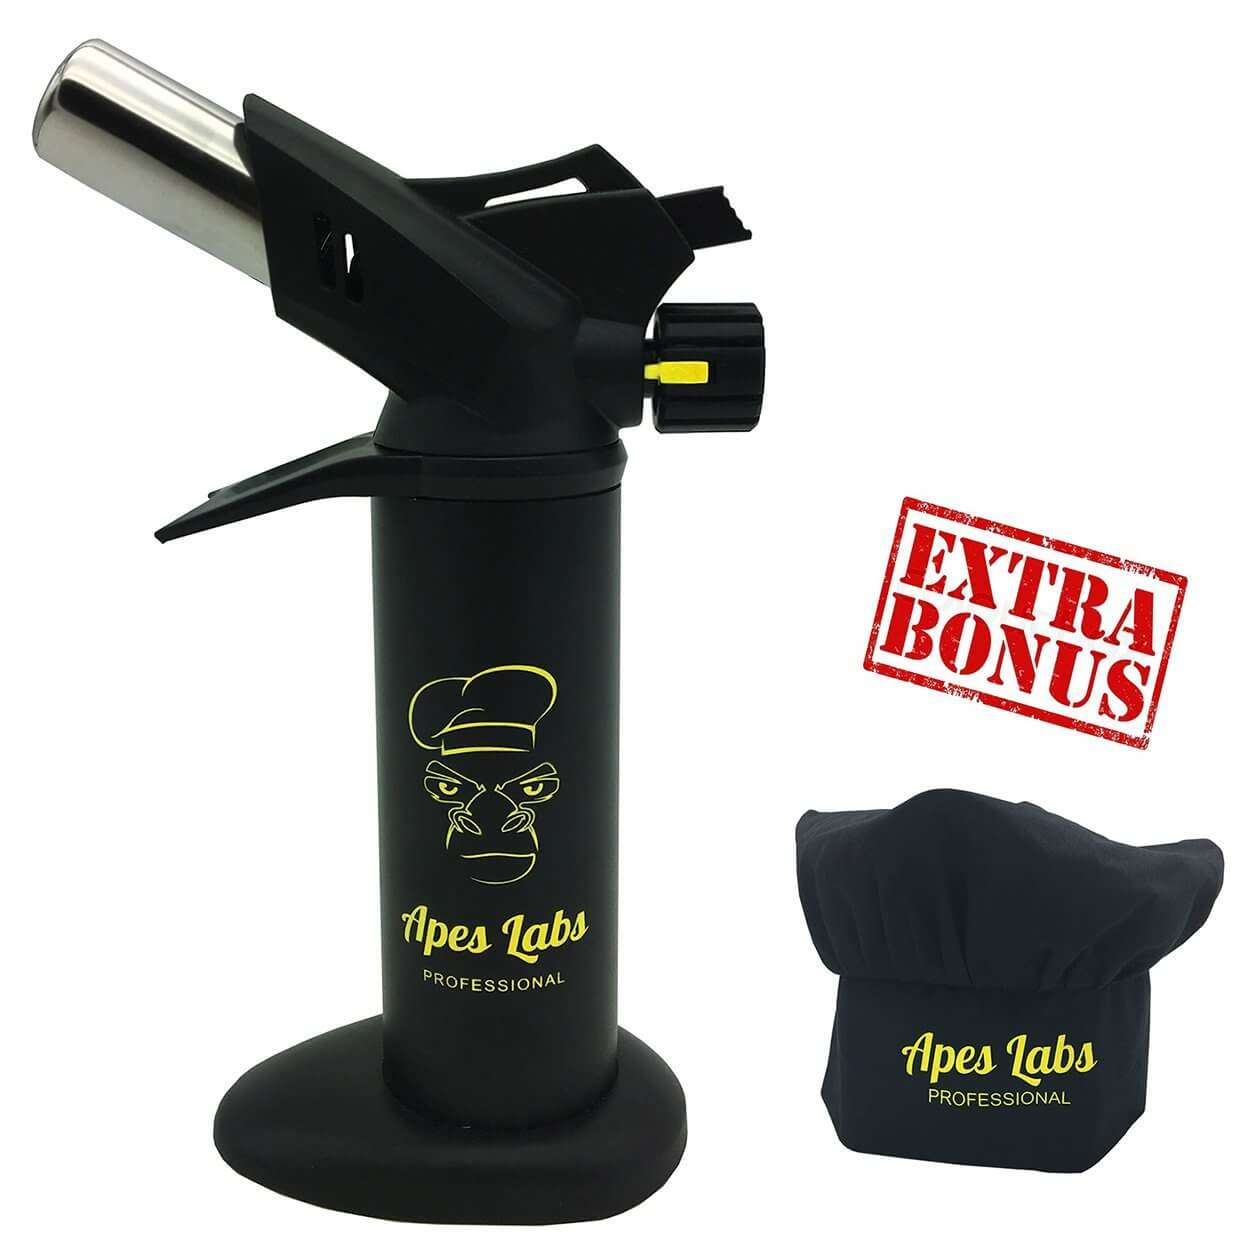 APES LABS Professional Kitchen Torch